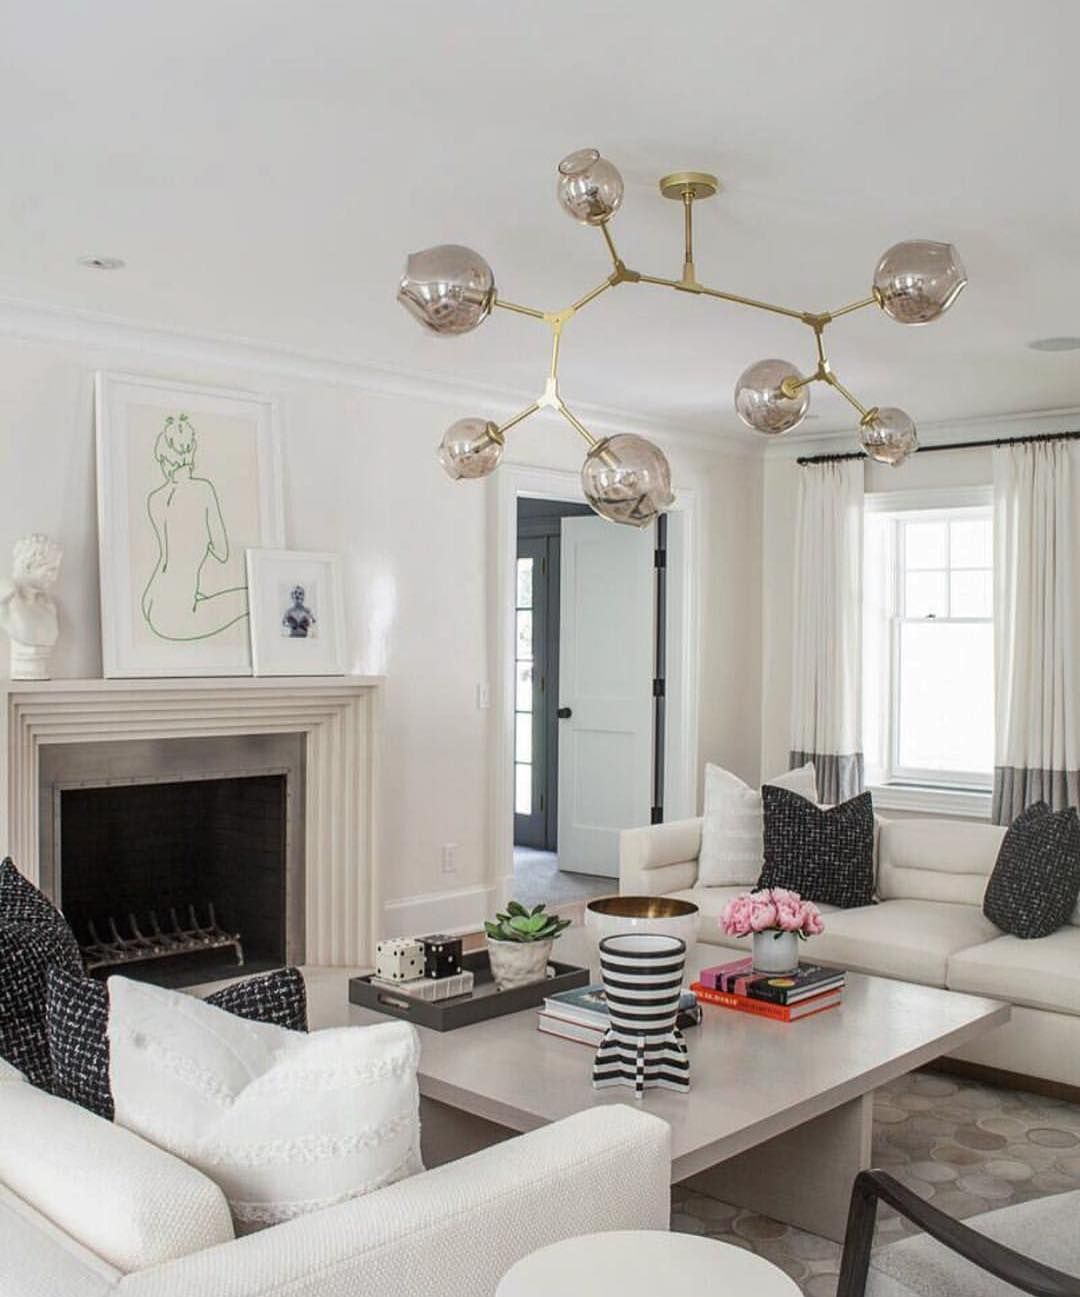 Michelle Gerson Interiors On Instagram Fb To One Of Our All Time Favorite Living Rooms Design By Michellegersoninteriors